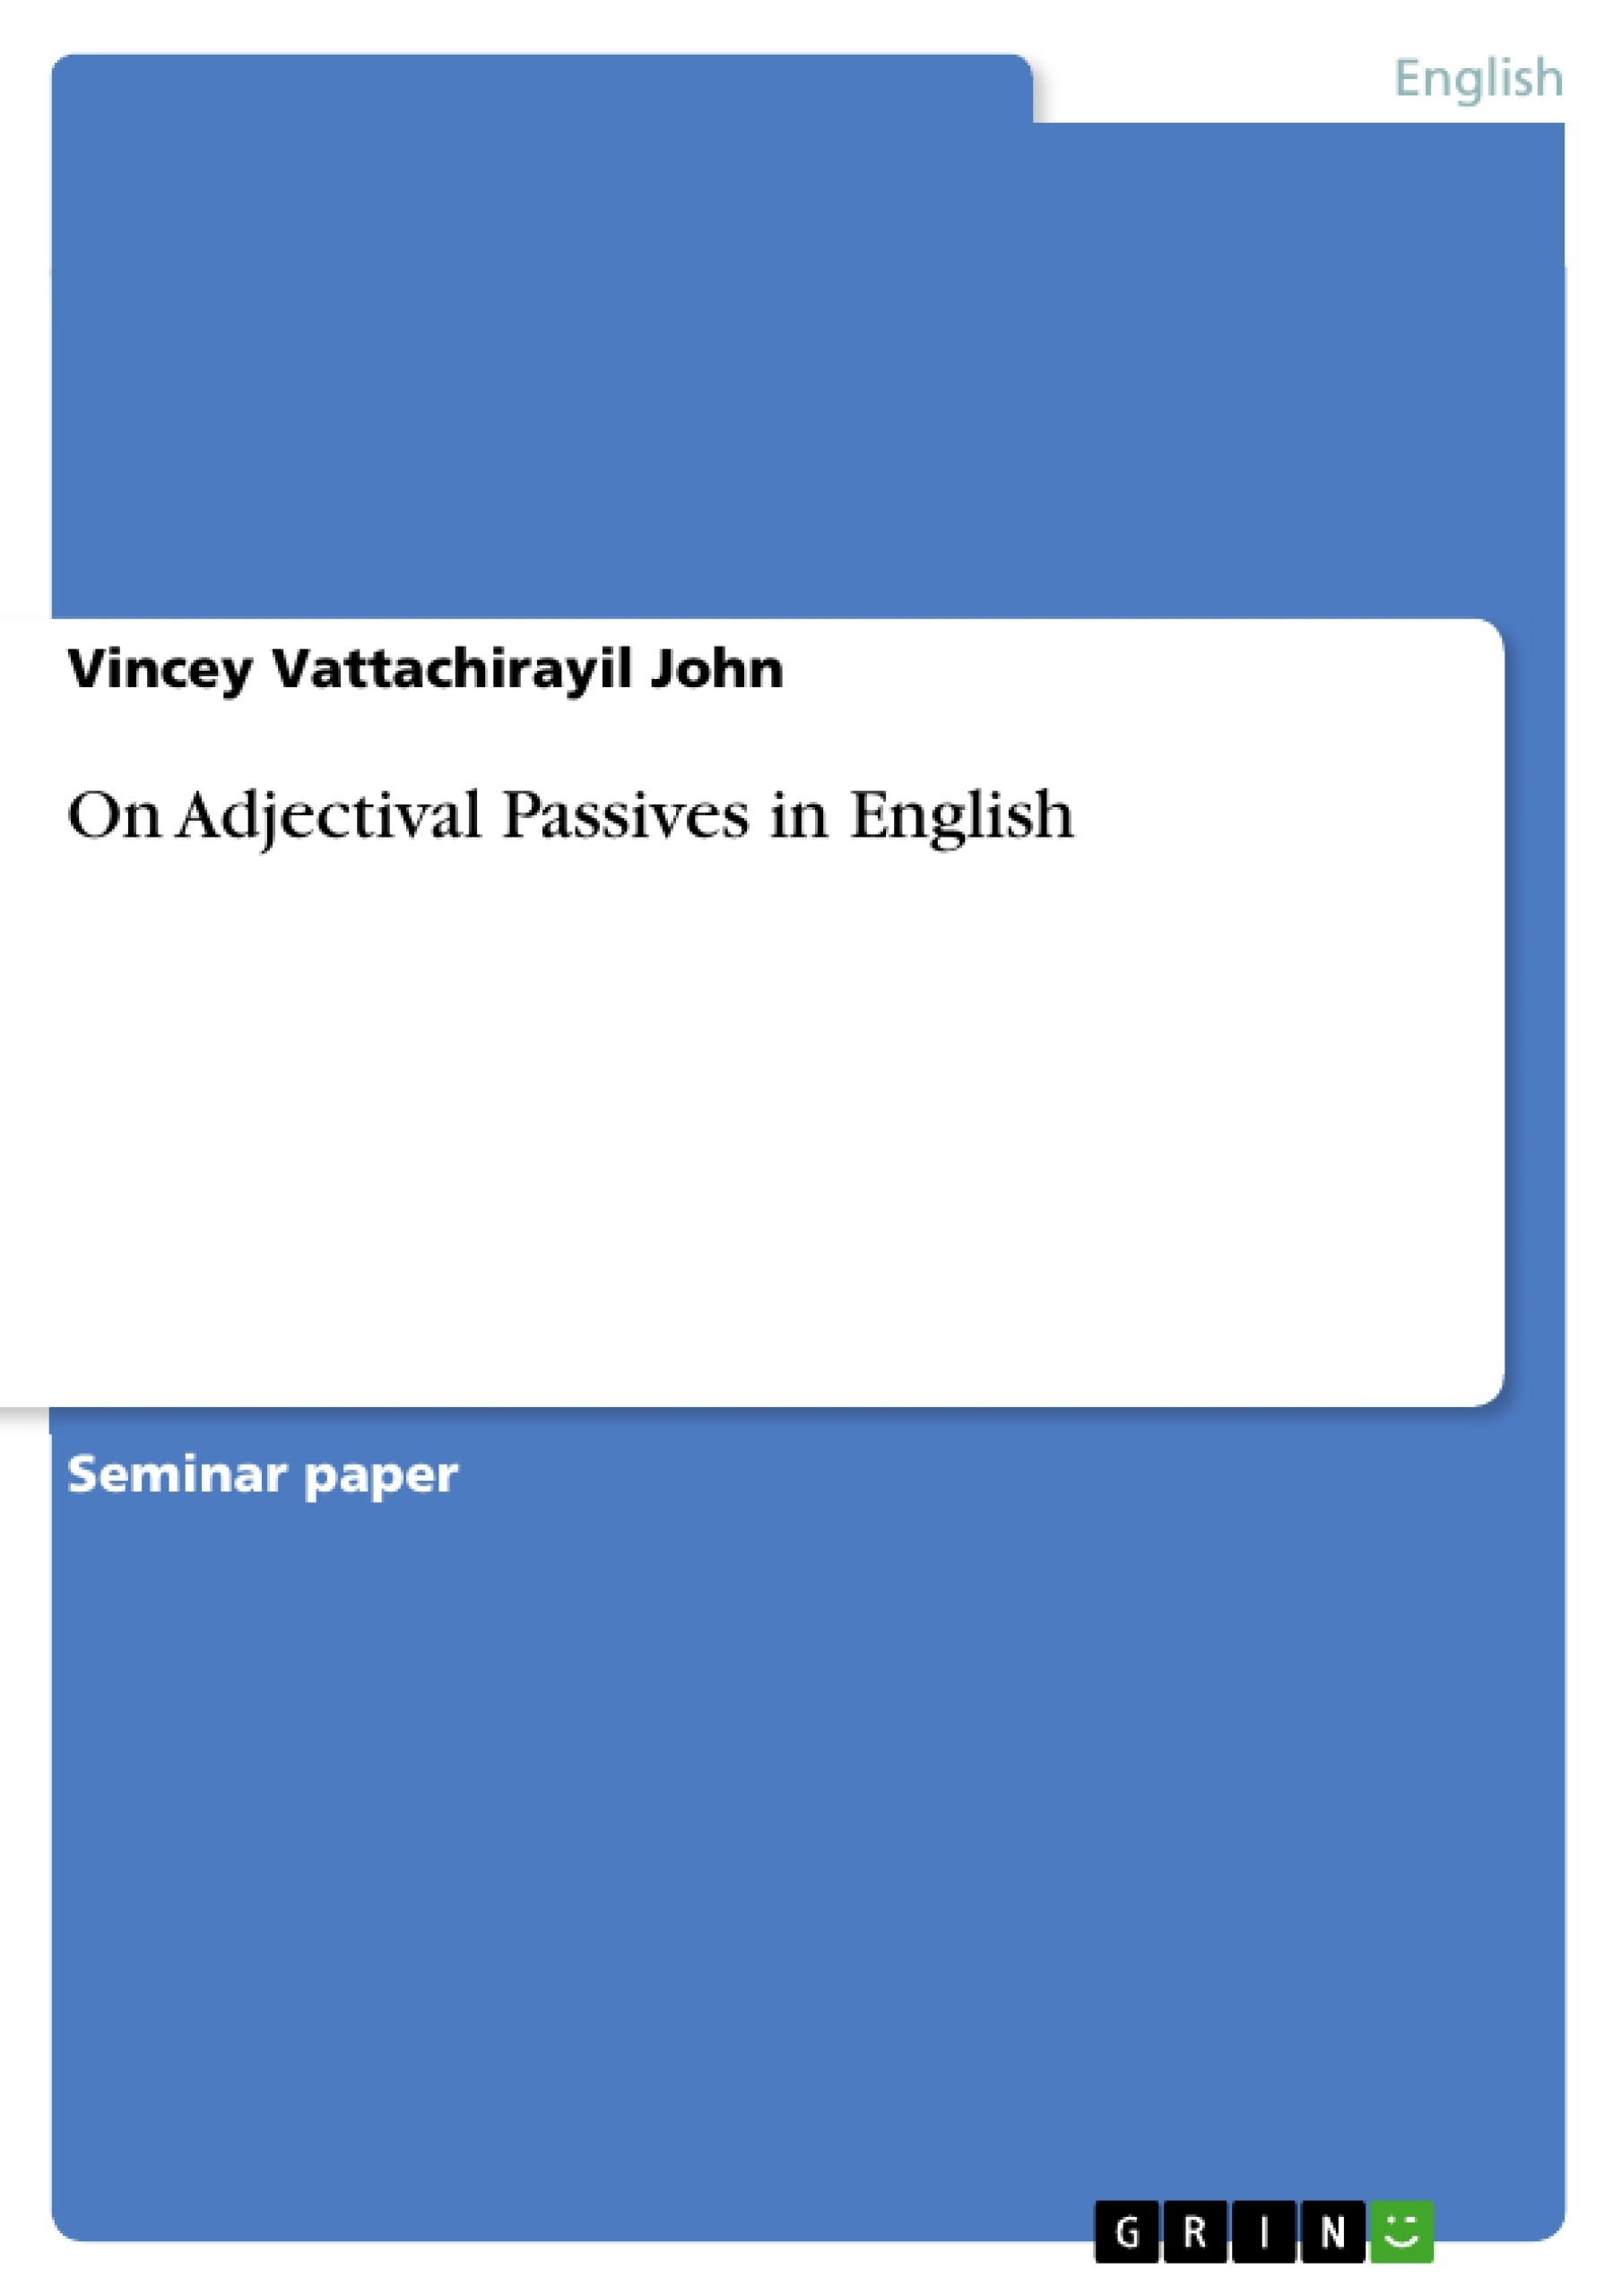 Title: On Adjectival Passives in English